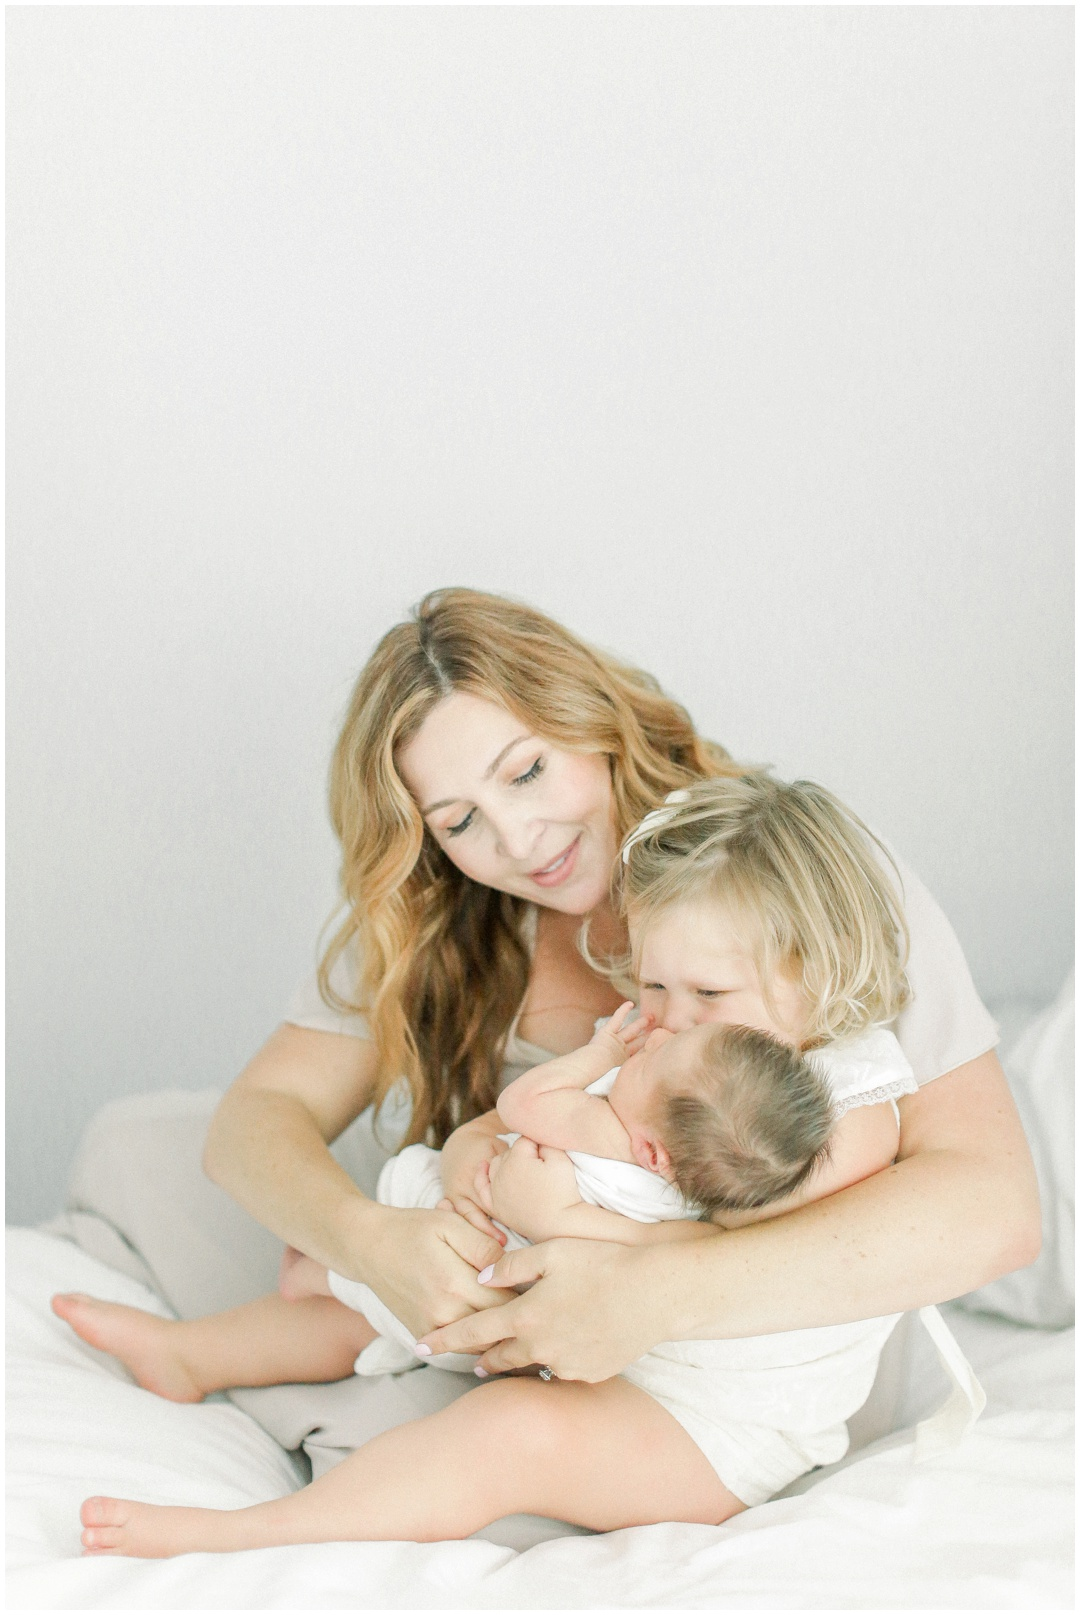 Newport_Beach_Newborn_Light_Airy_Natural_Photographer_Newport_Beach_Photographer_Orange_County_Family_Photographer_Cori_Kleckner_Photography_Newport_Beach_Photographer_Blaire_Baker_Brett_Baker_Caroline_Baker__3921.jpg